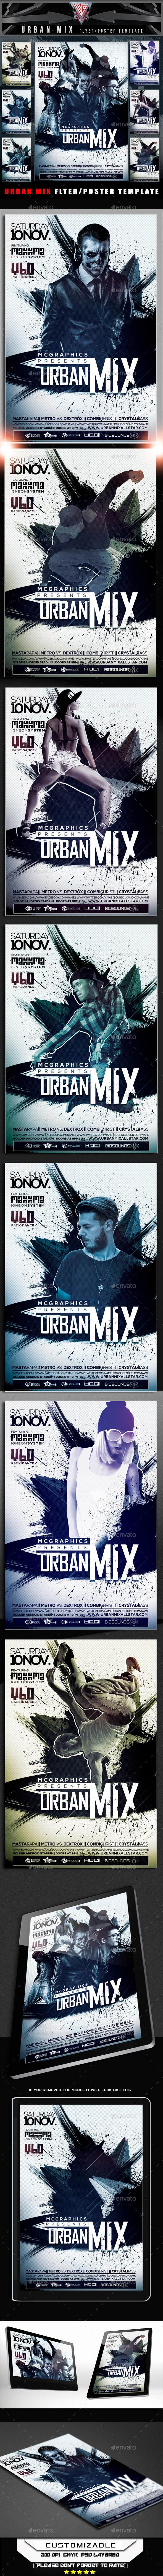 Urban Mix Flyer Template - Flyers Print Templates